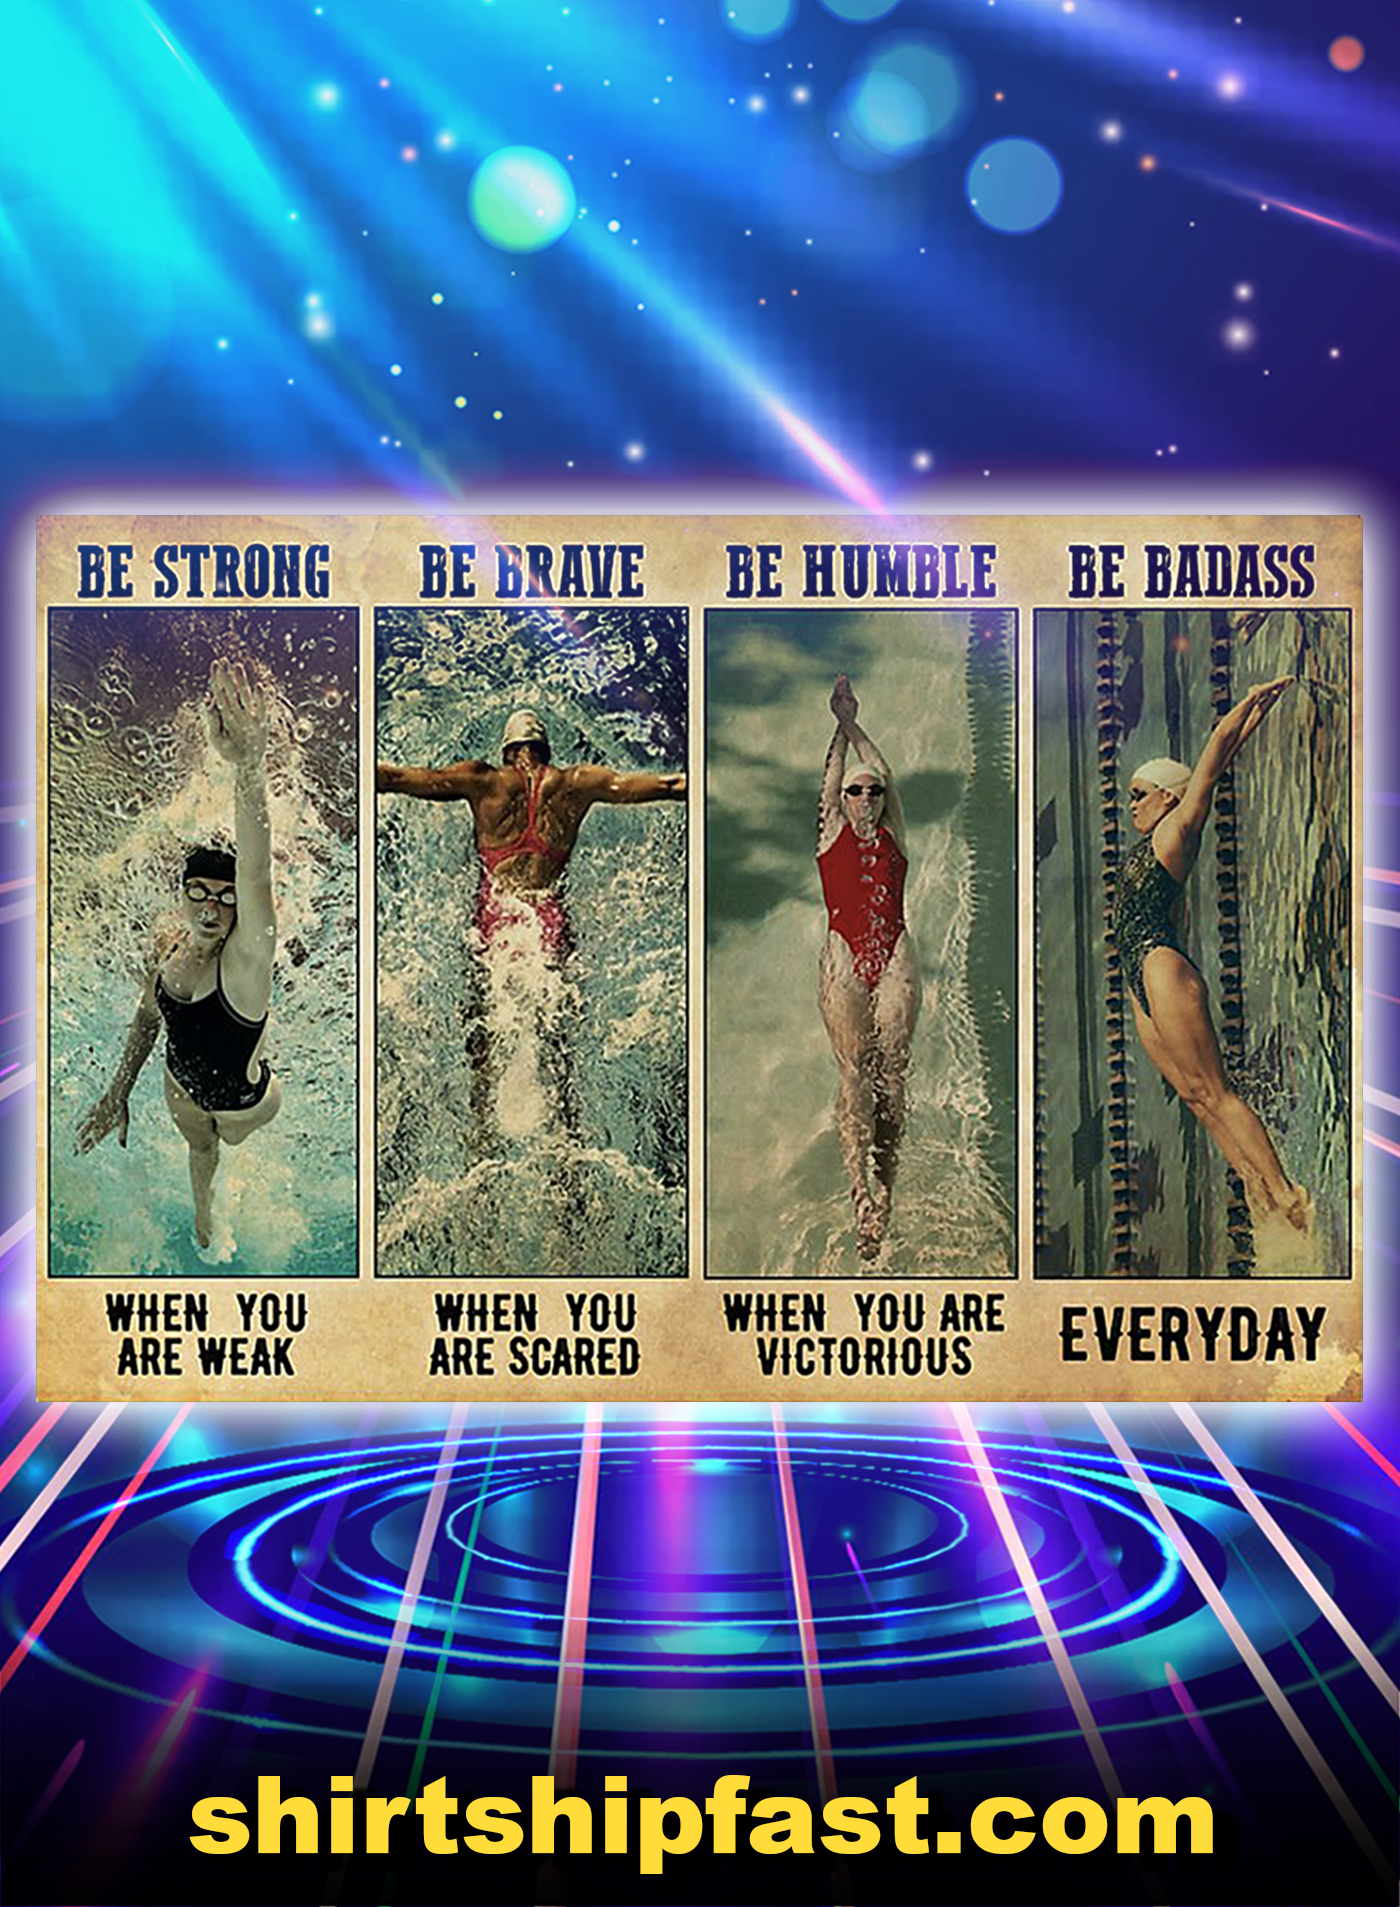 SWIMMING BE STRONG BE BRAVE BE HUMBLE BE BADASS POSTER - A1